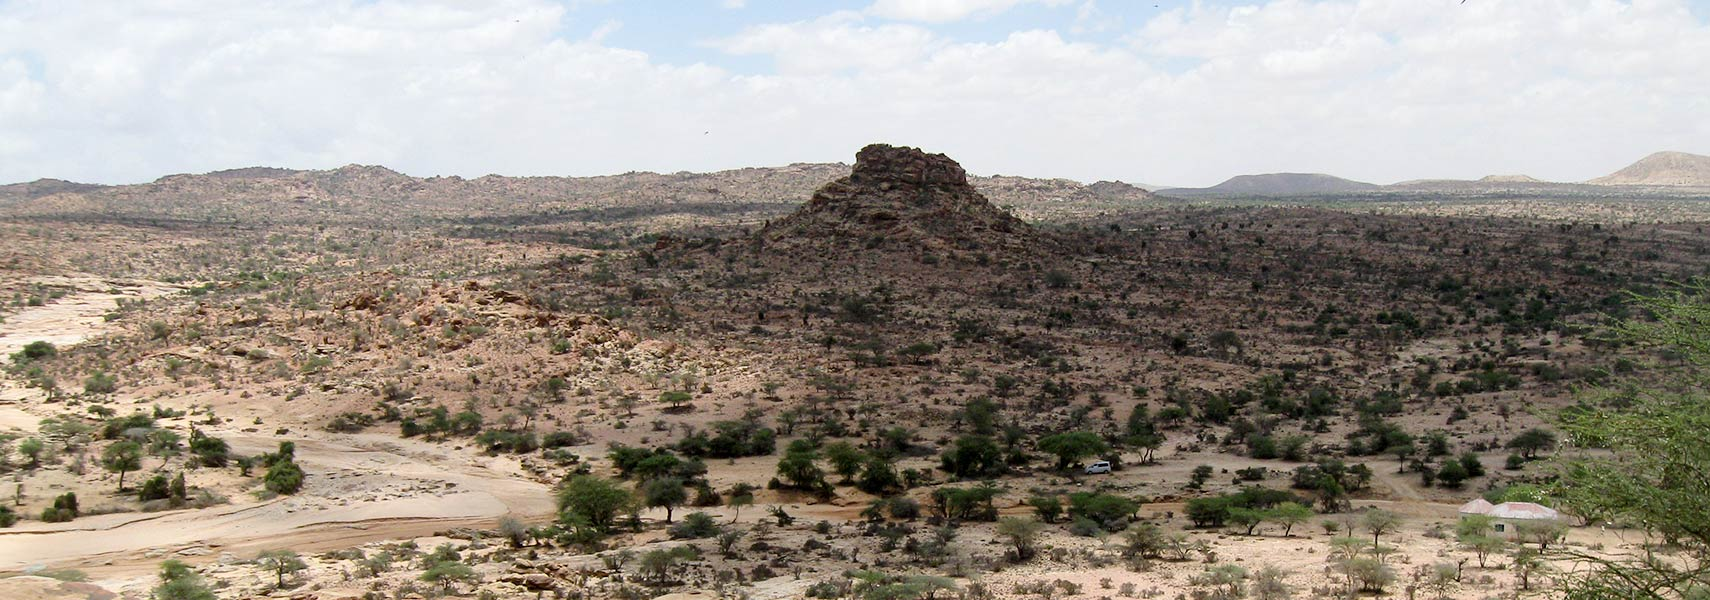 Landscape in northern Somalia